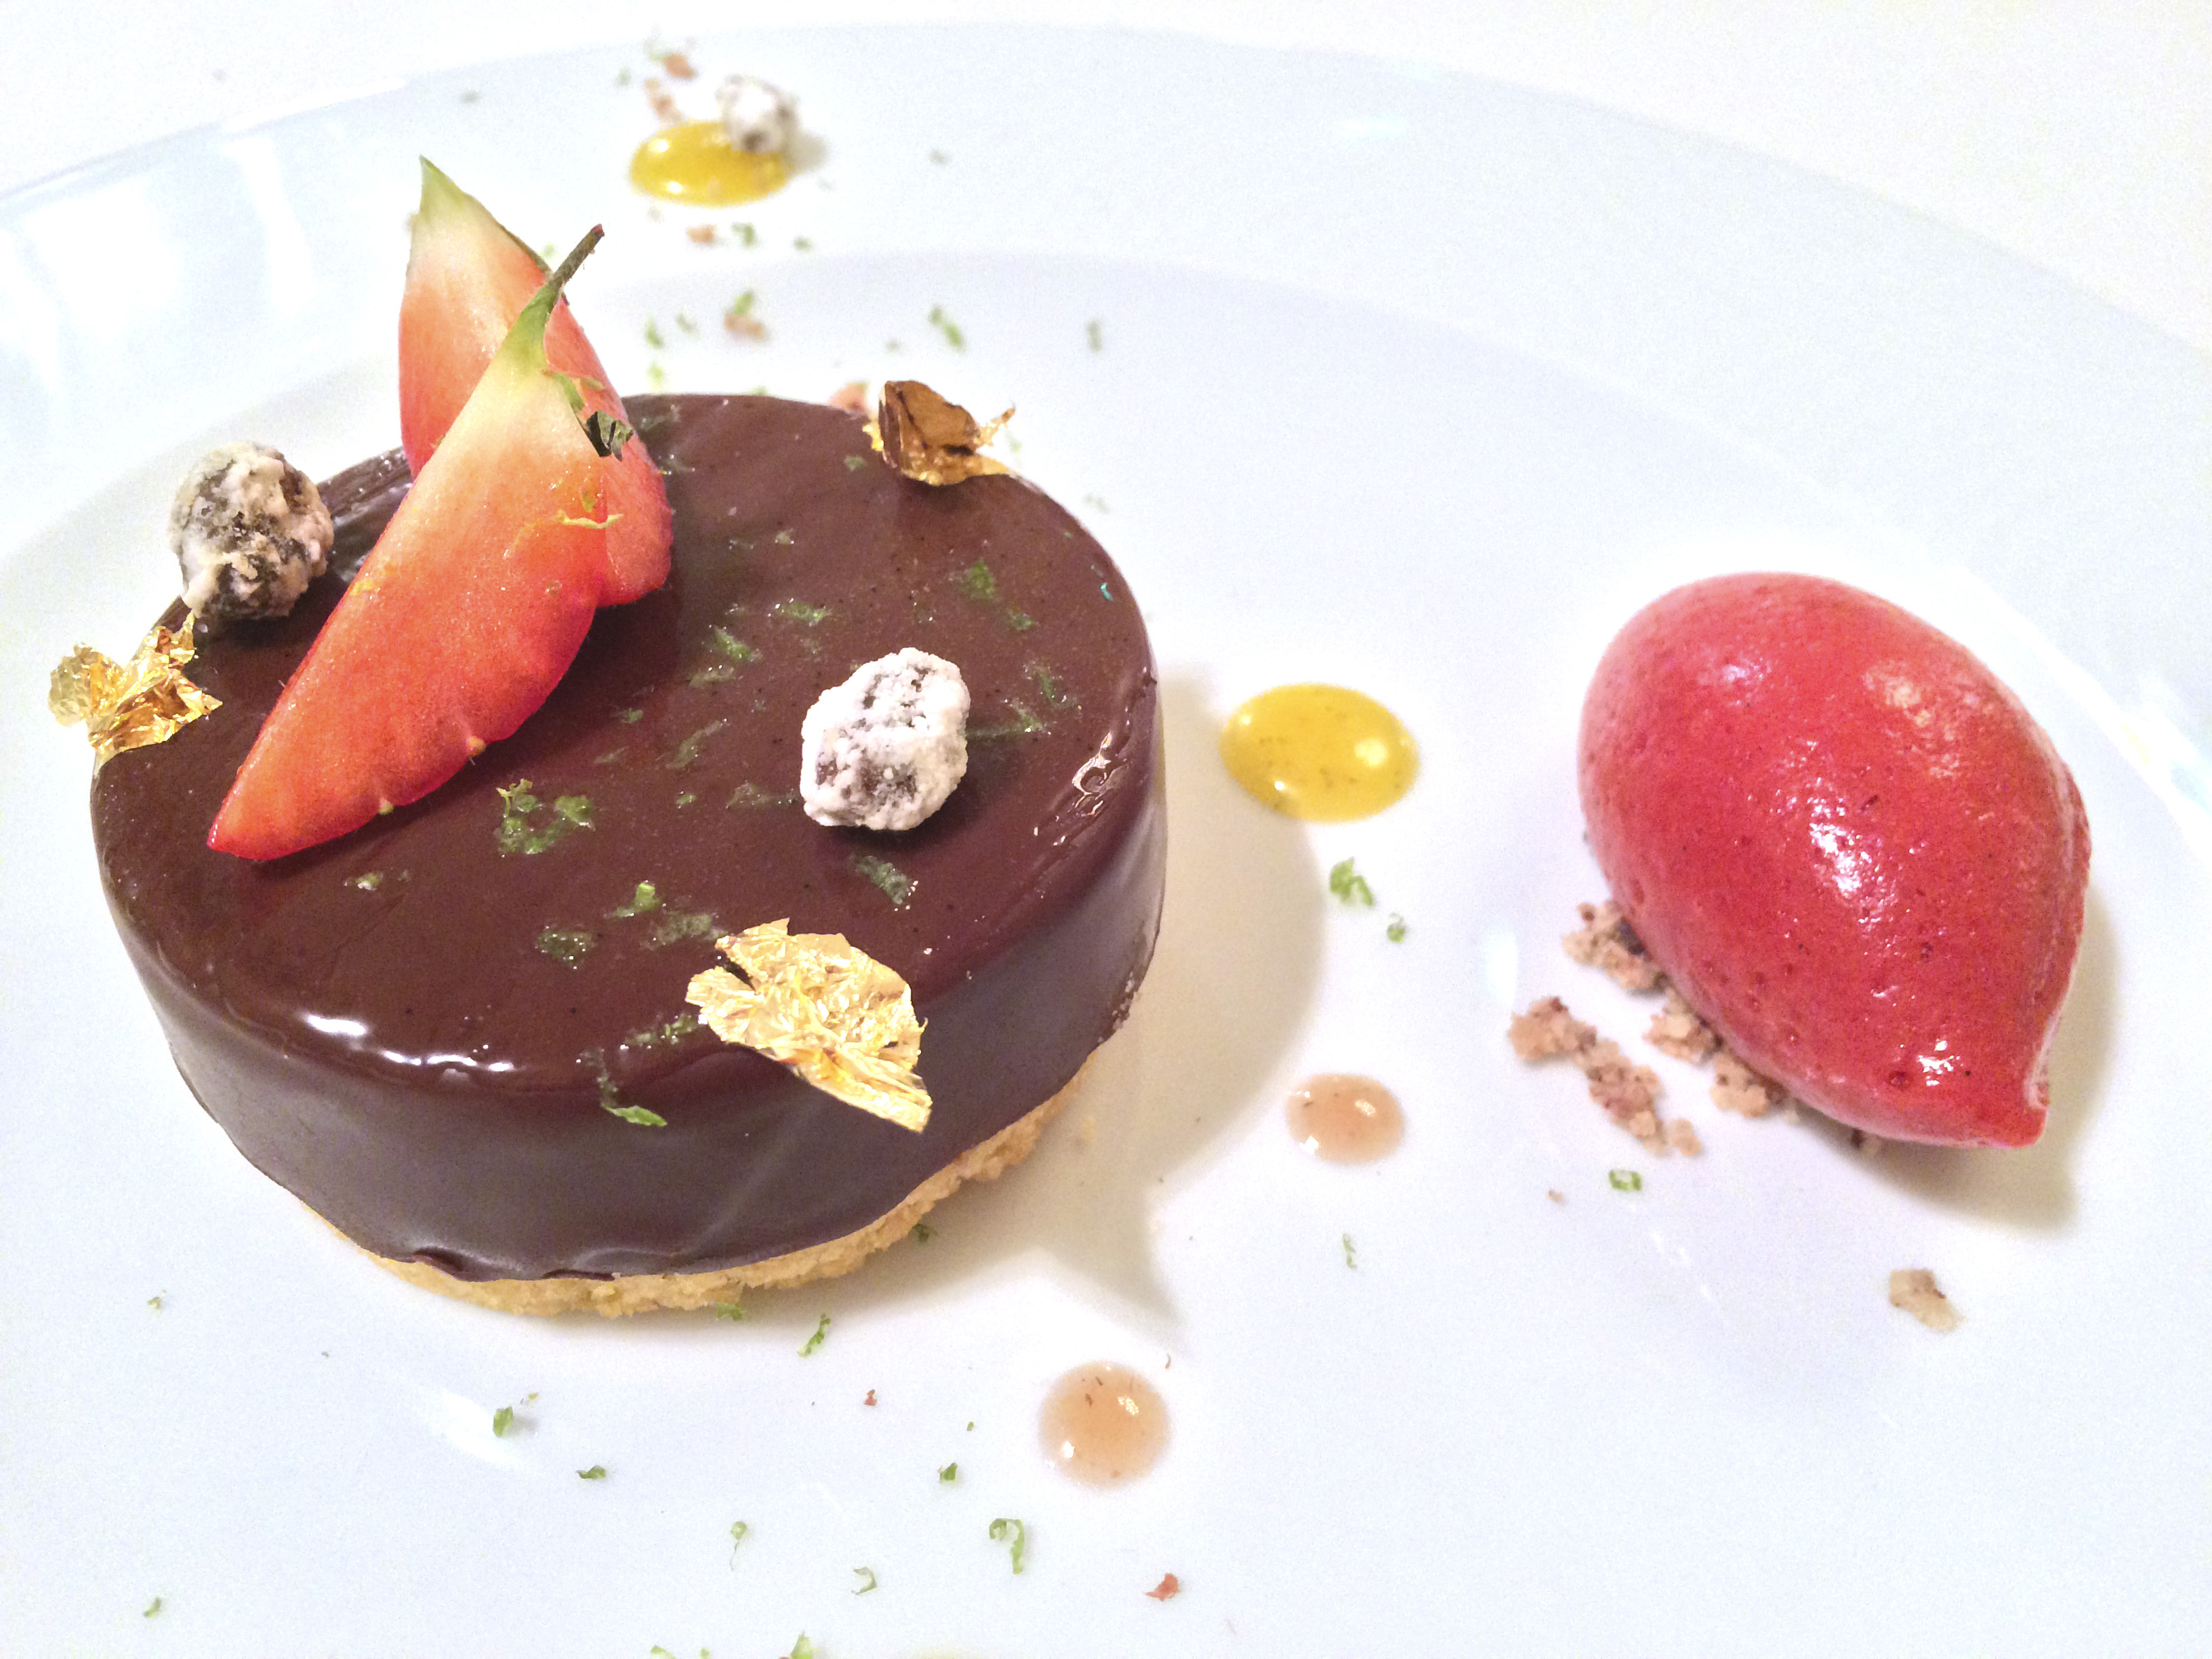 Maison D'Uzes chocolate dessert with raspberry and red pepper sorbet